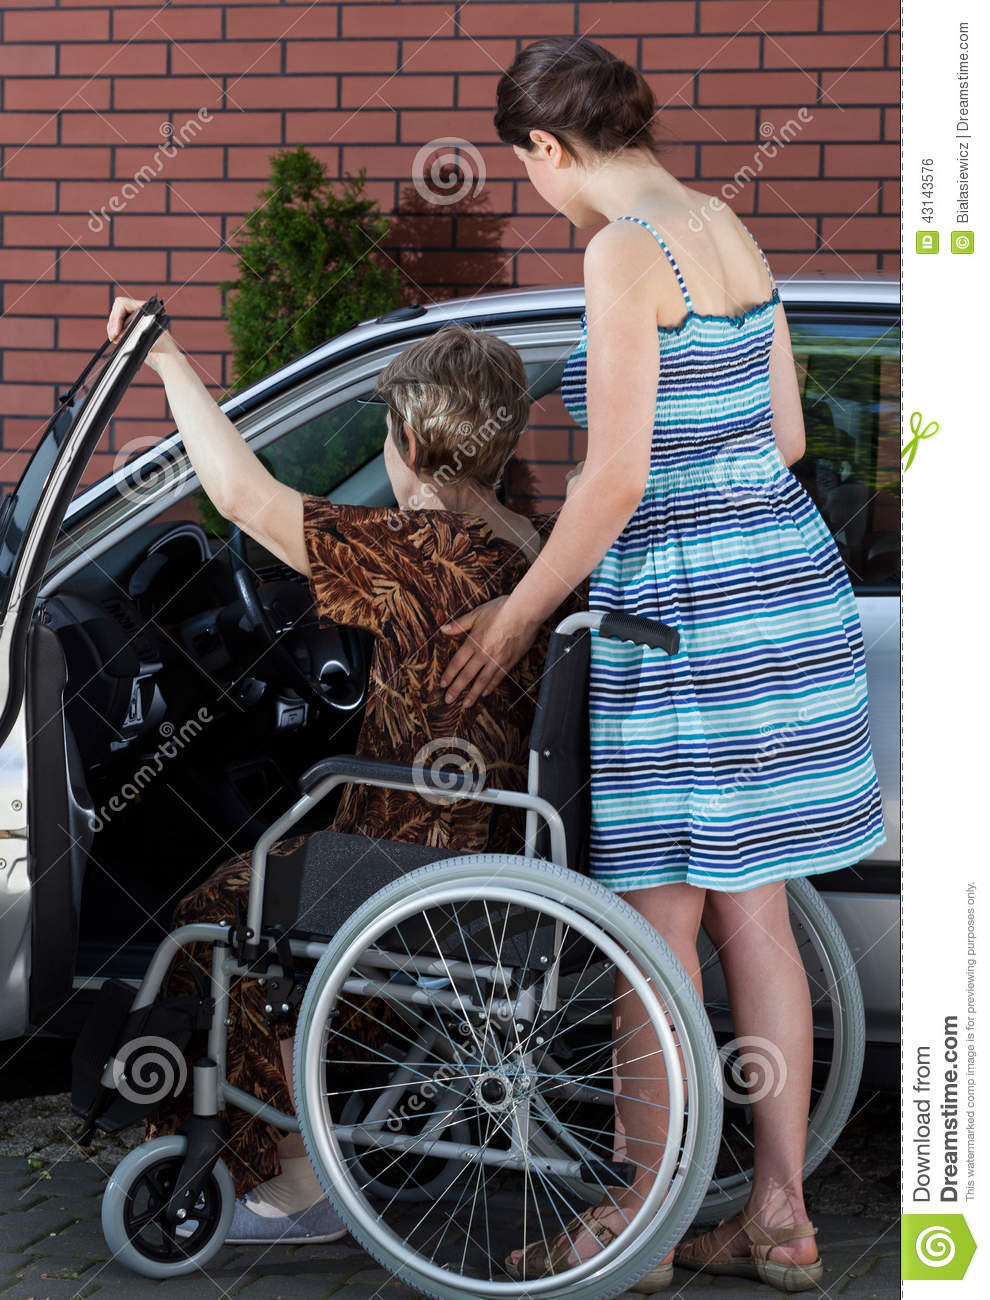 a disabled elderly woman getting into a car stock photo image 43143576. Black Bedroom Furniture Sets. Home Design Ideas